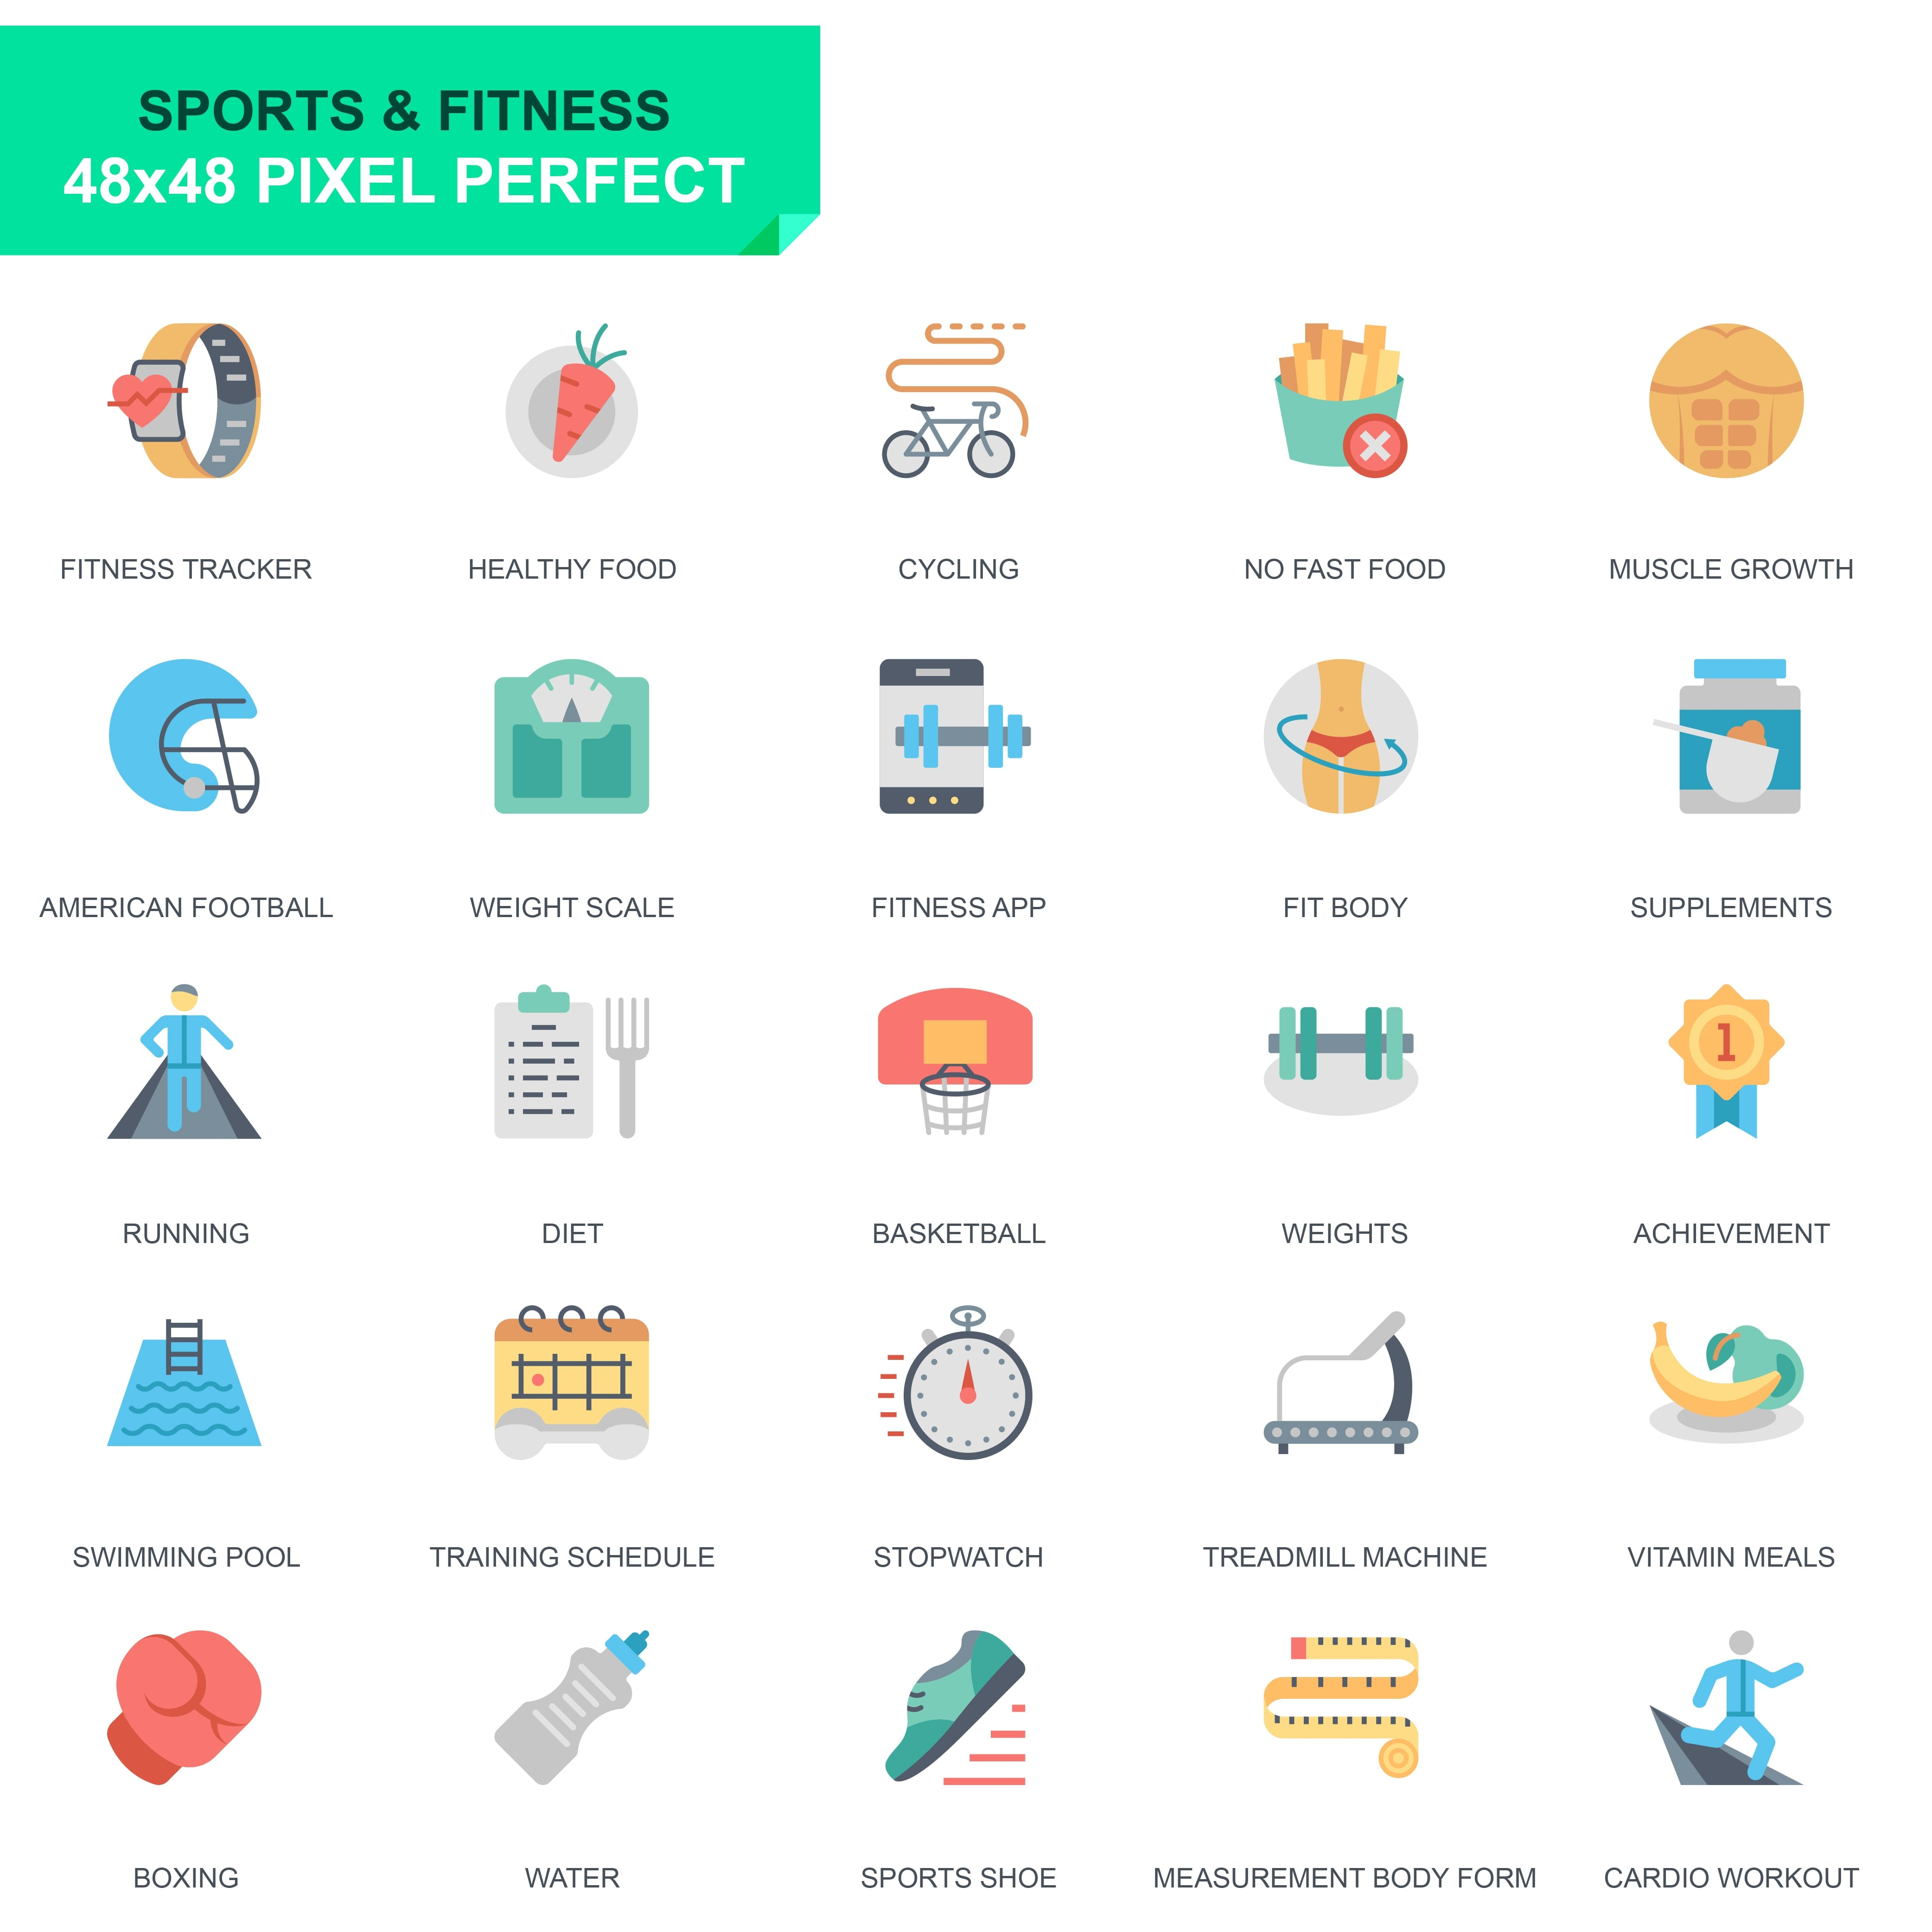 625 Flat Business Icons - just $24 - 7 2